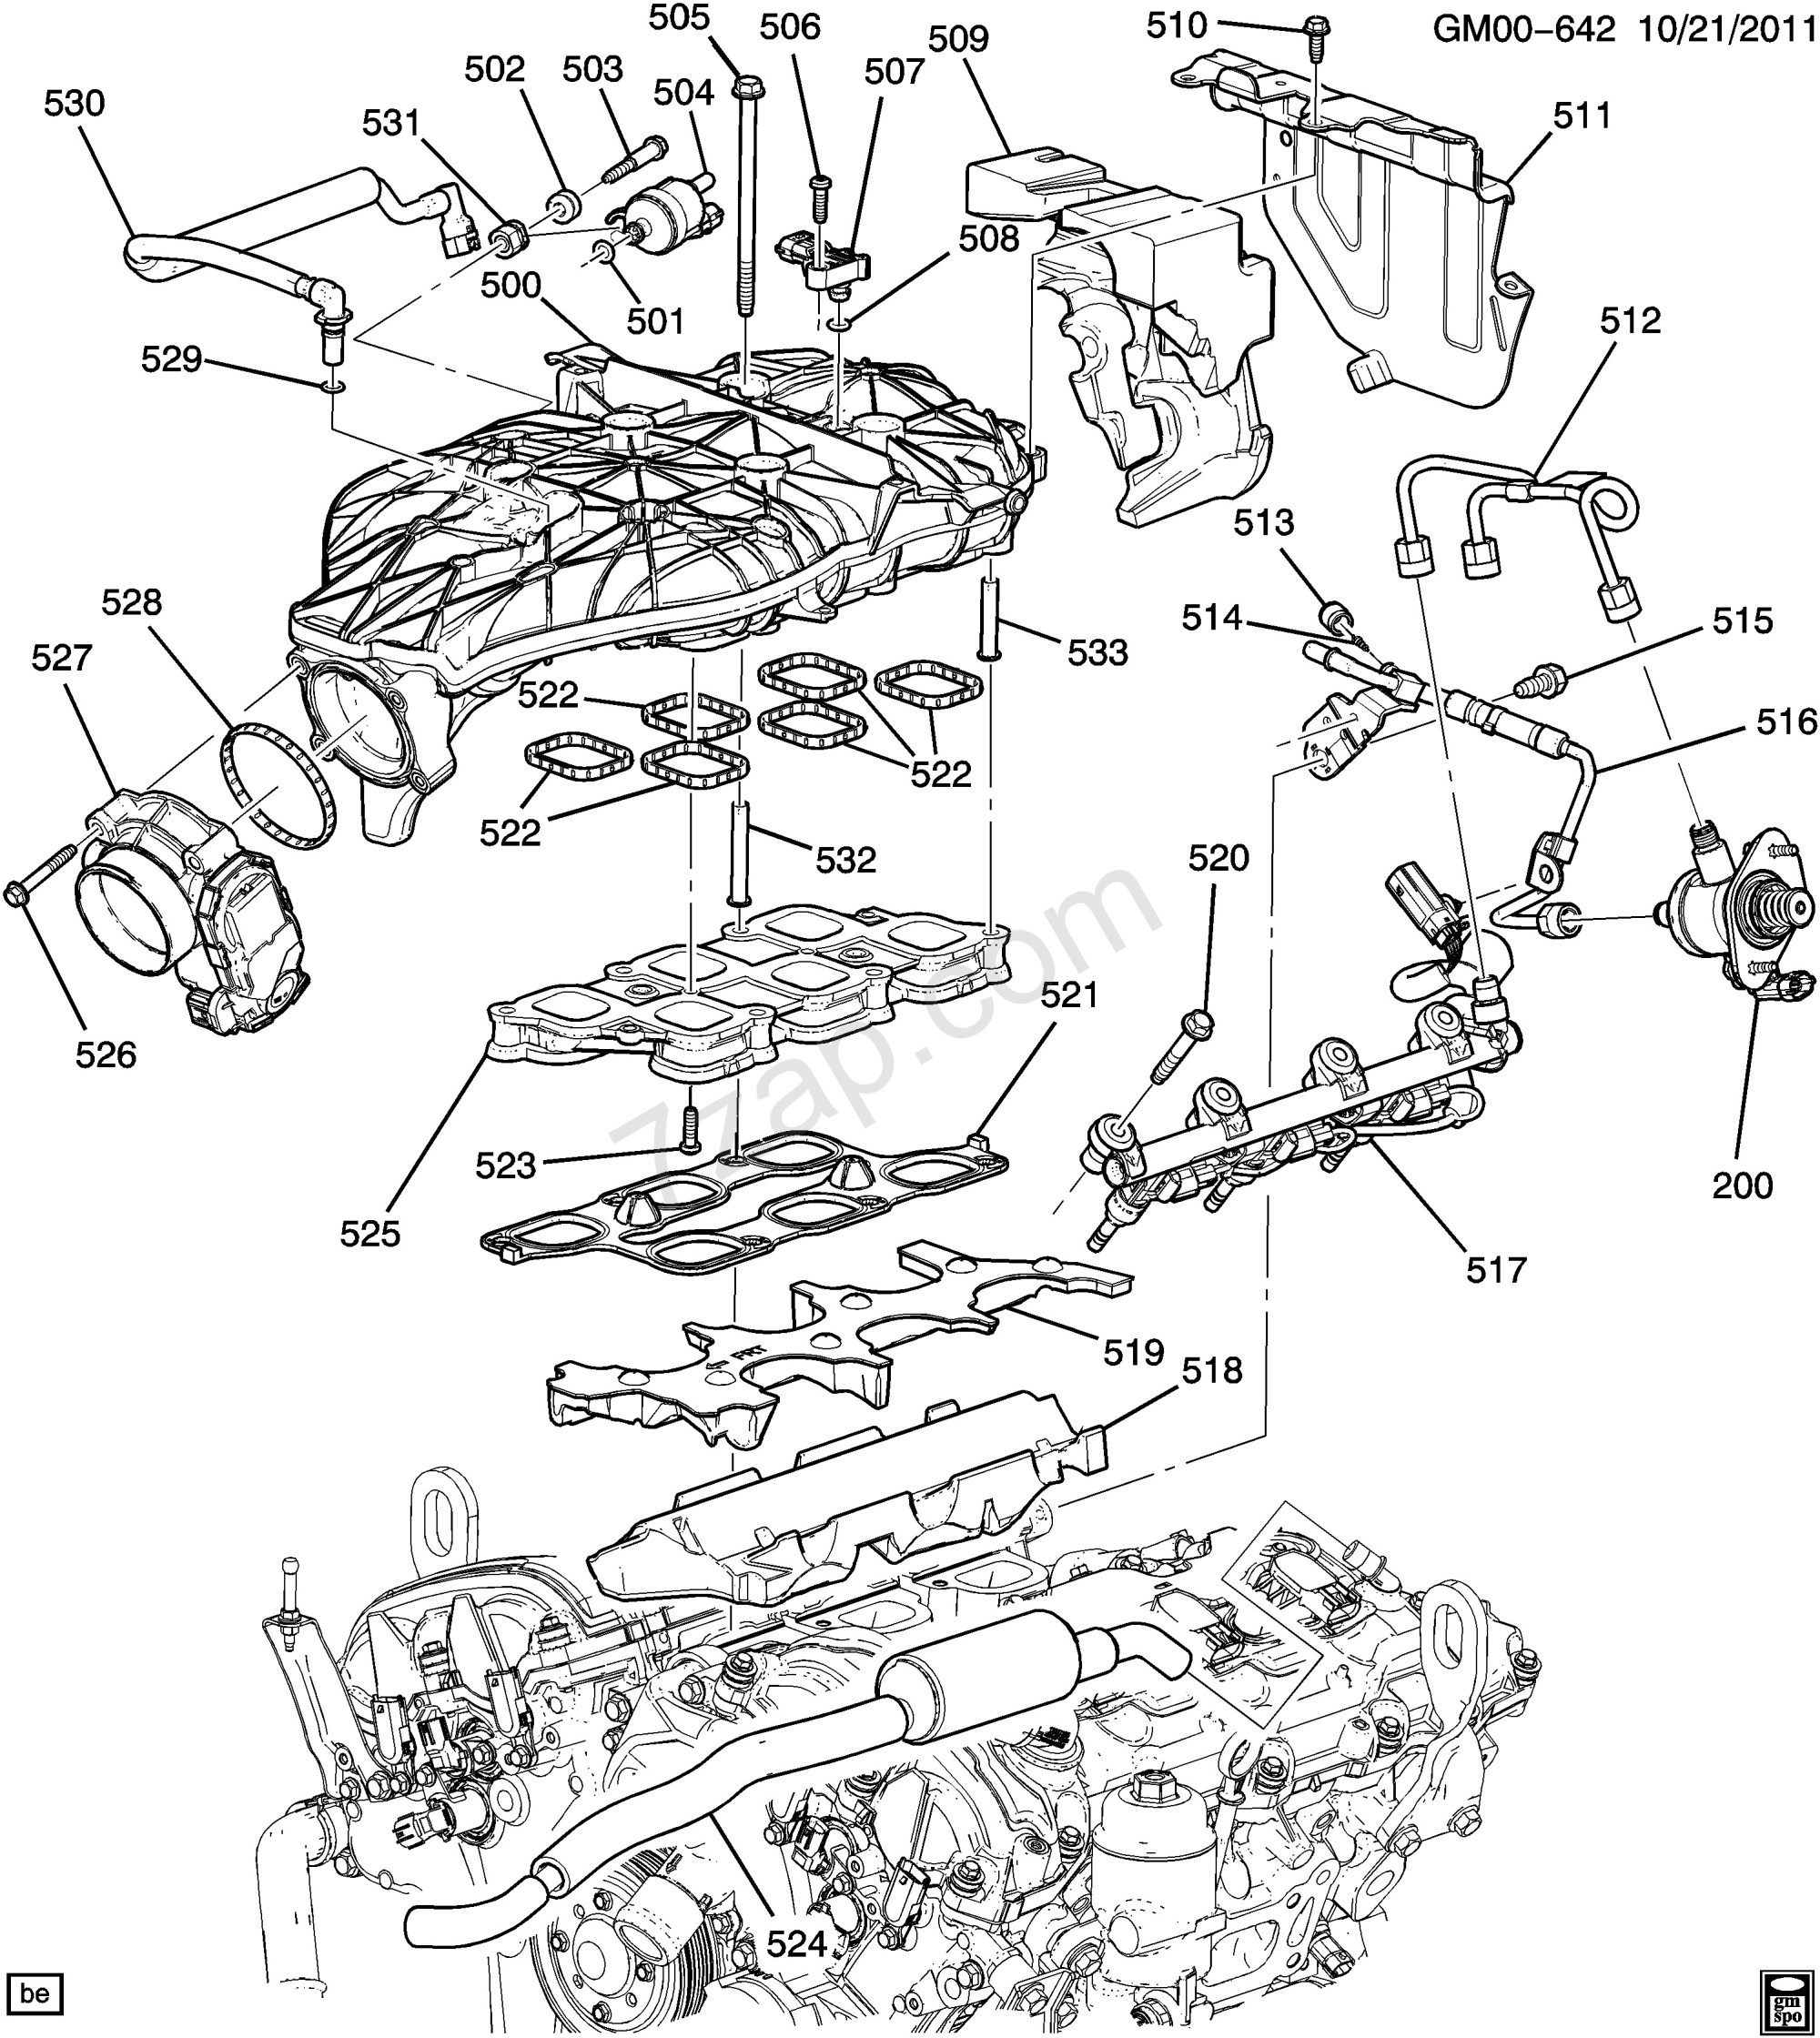 hight resolution of 2011 jeep grand cherokee 3 6 engine diagram wiring diagram operations 2011 jeep grand cherokee laredo diagram 2011 jeep grand cherokee engine diagram